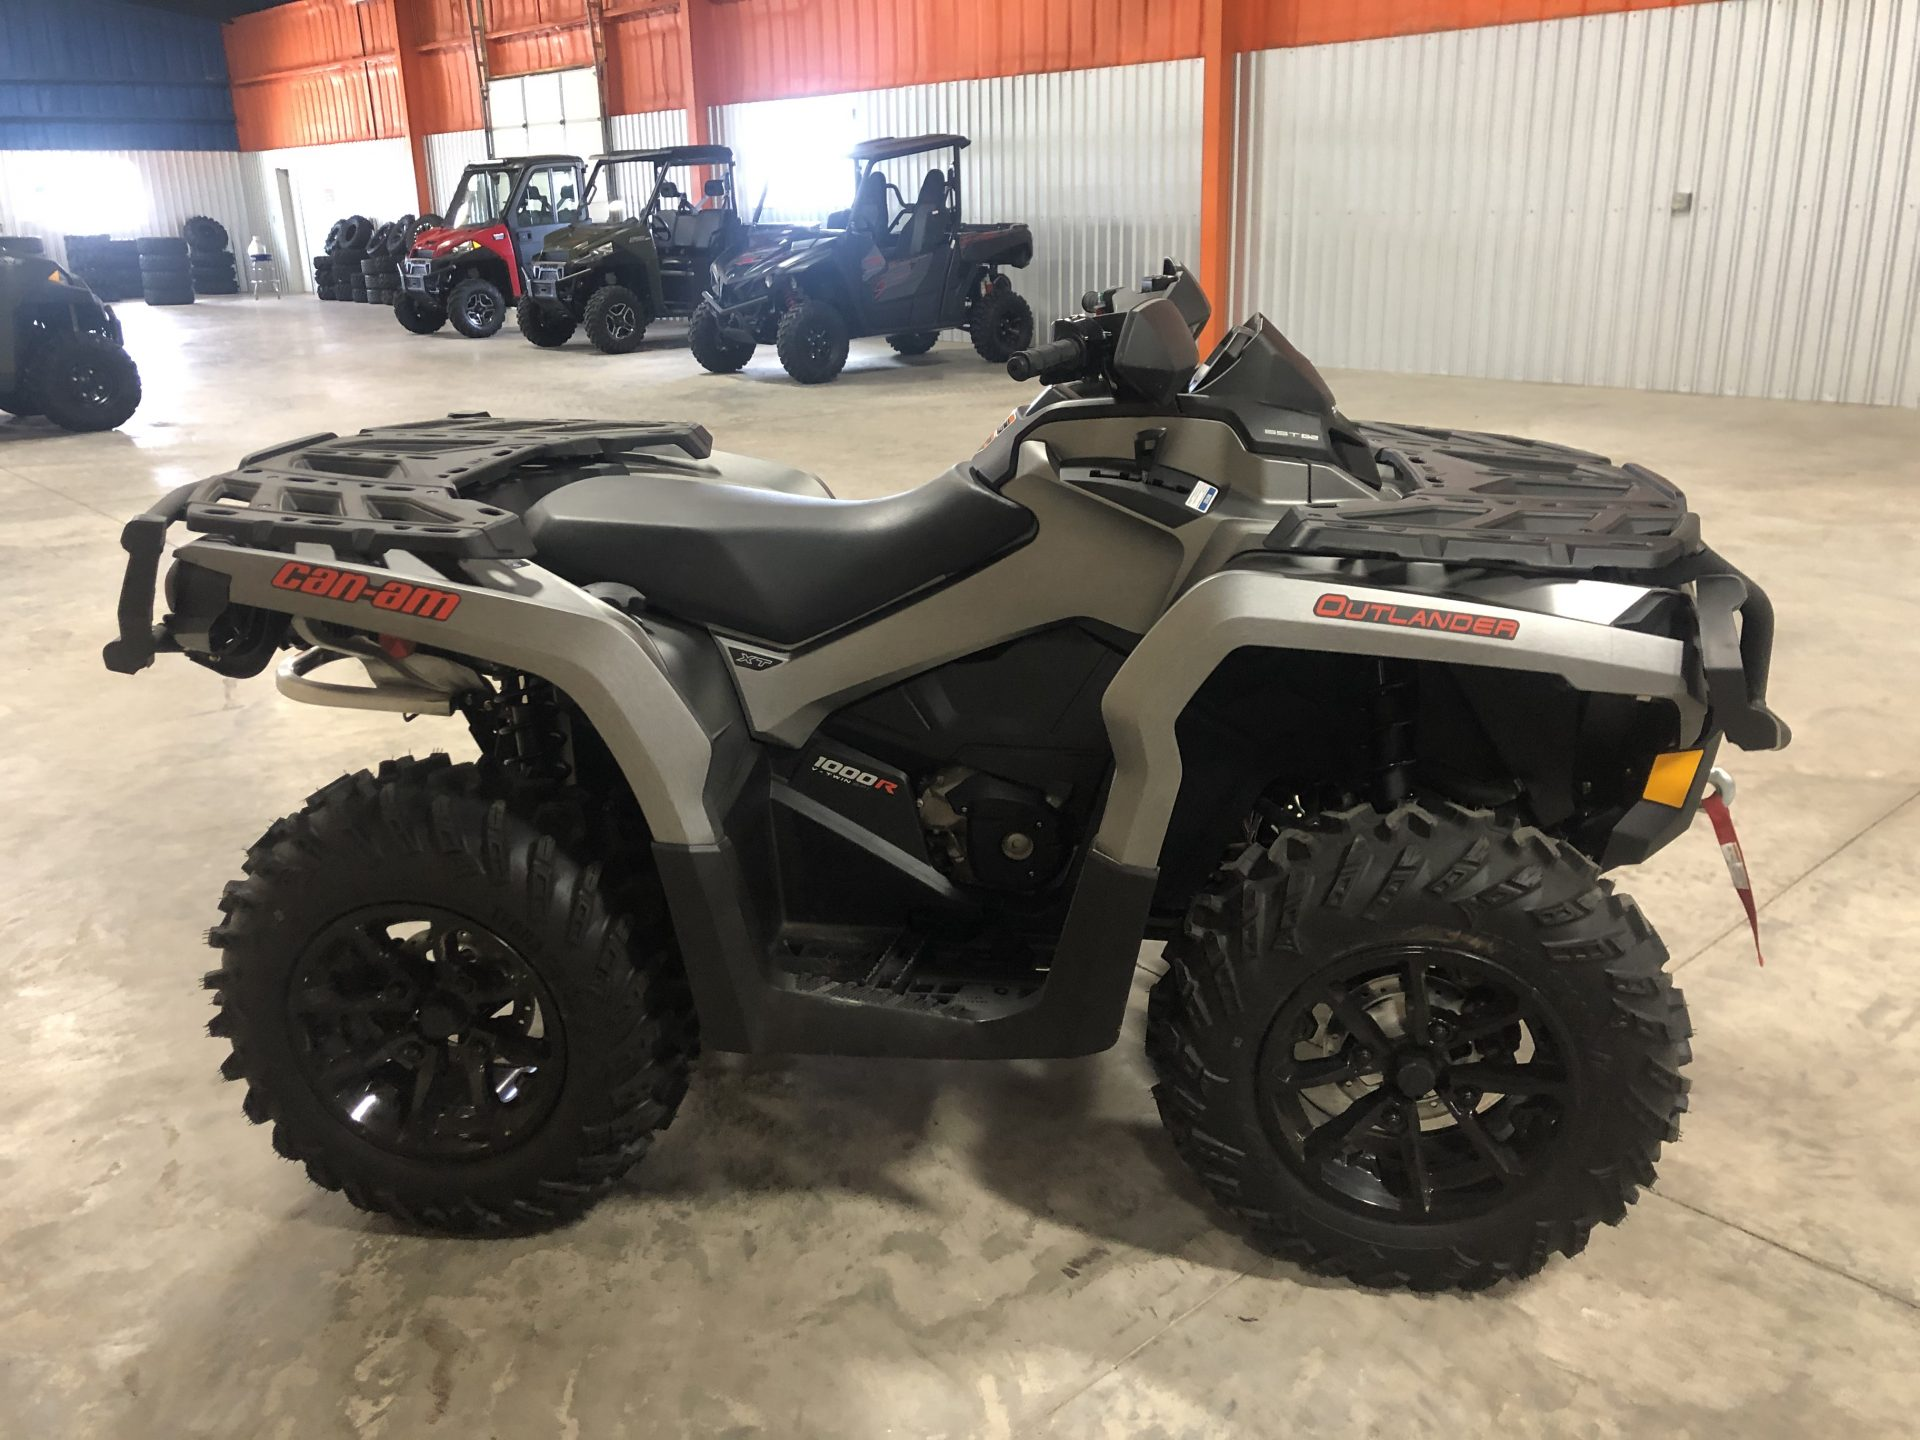 2017 Can-Am 1000 Outlander XT Image